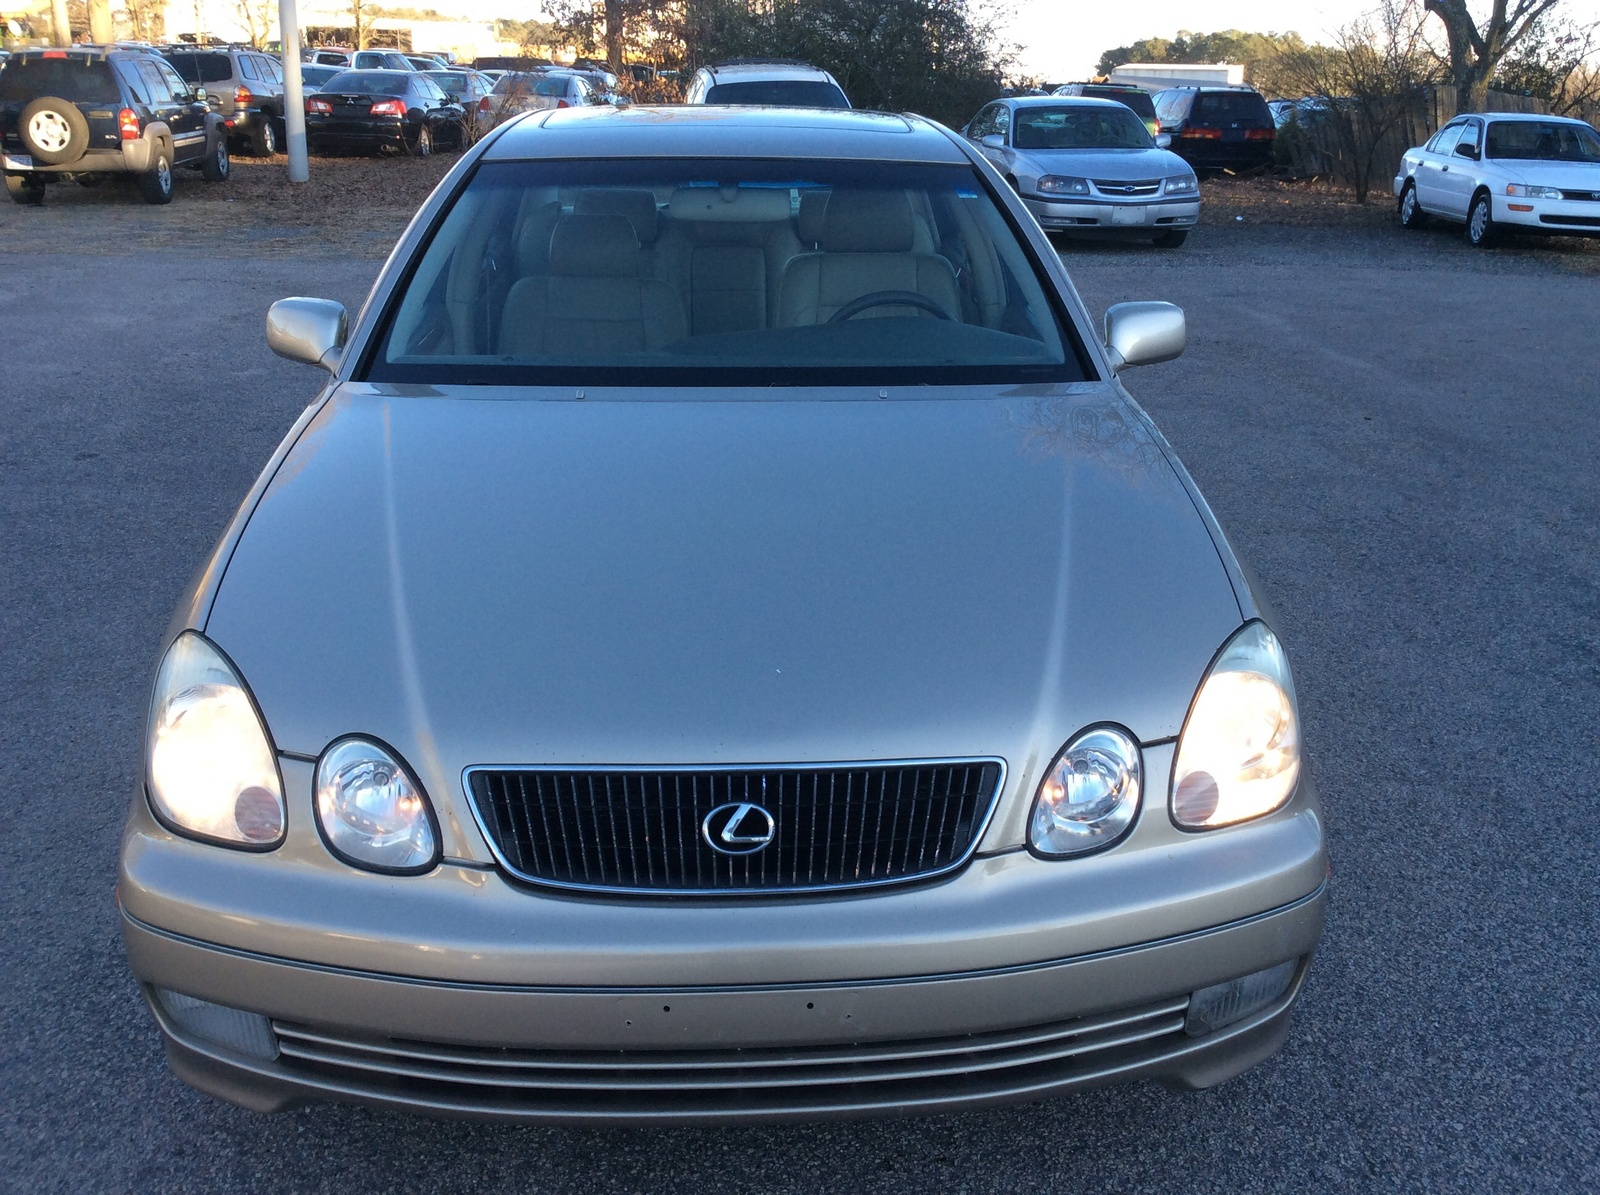 Picture of 1998 Lexus GS 300 Base